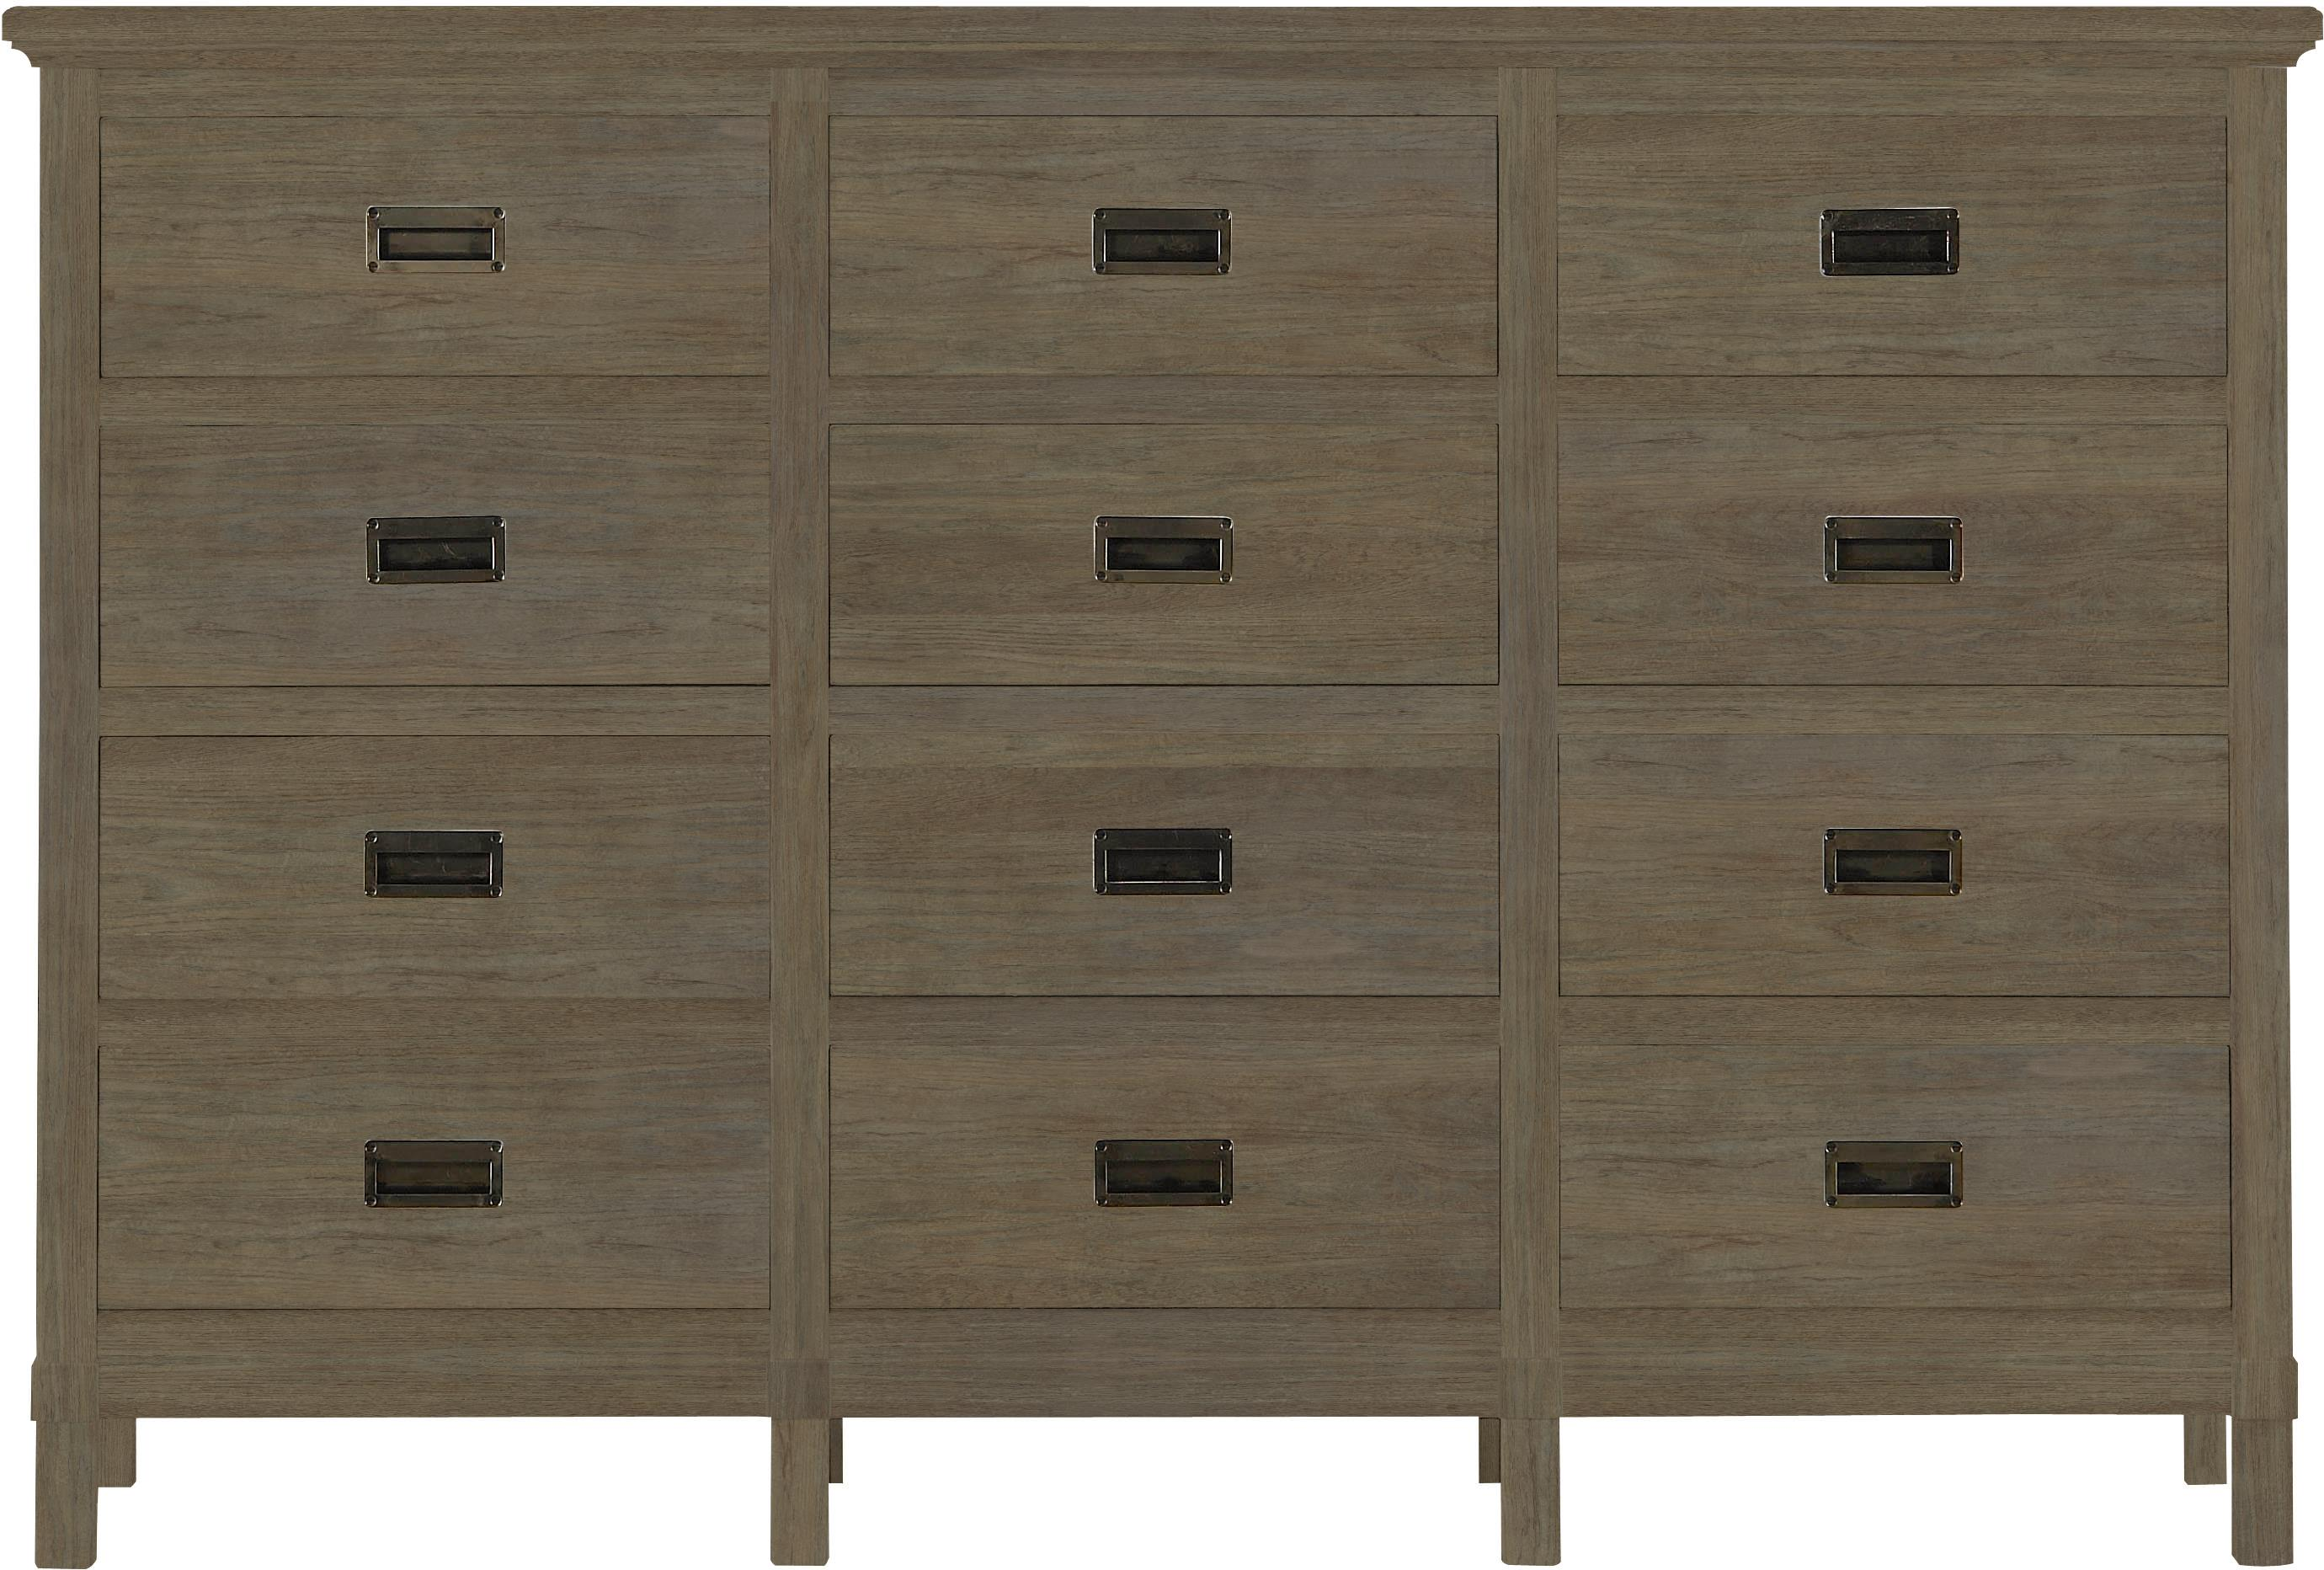 Stanley Furniture Coastal Living Resort Haven's Harbor Dresser - Item Number: 062-33-05